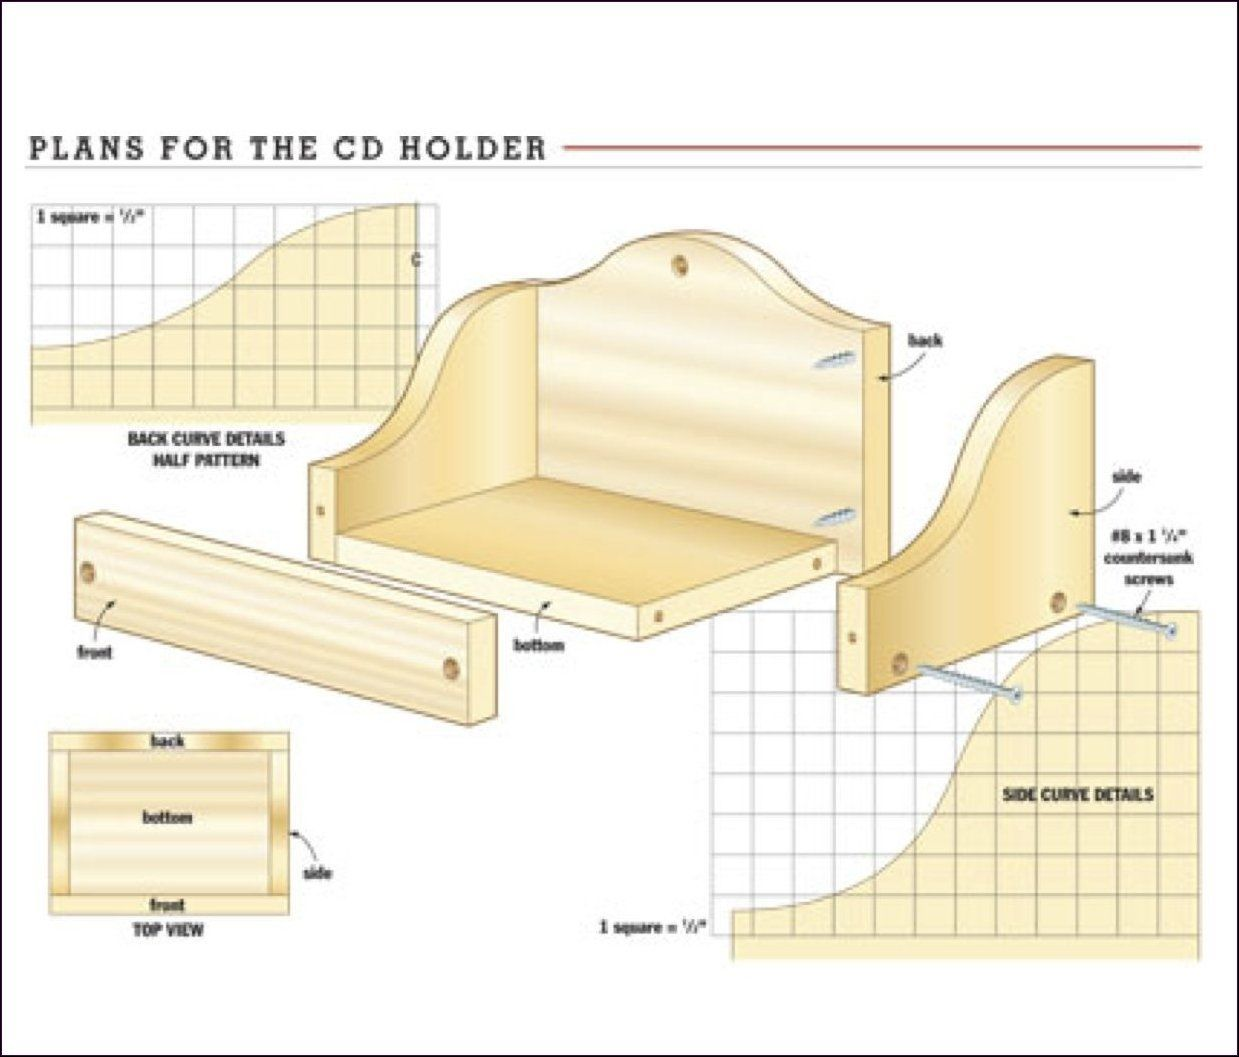 Get Woodworking Plans First To Learn The Woodworking Craft